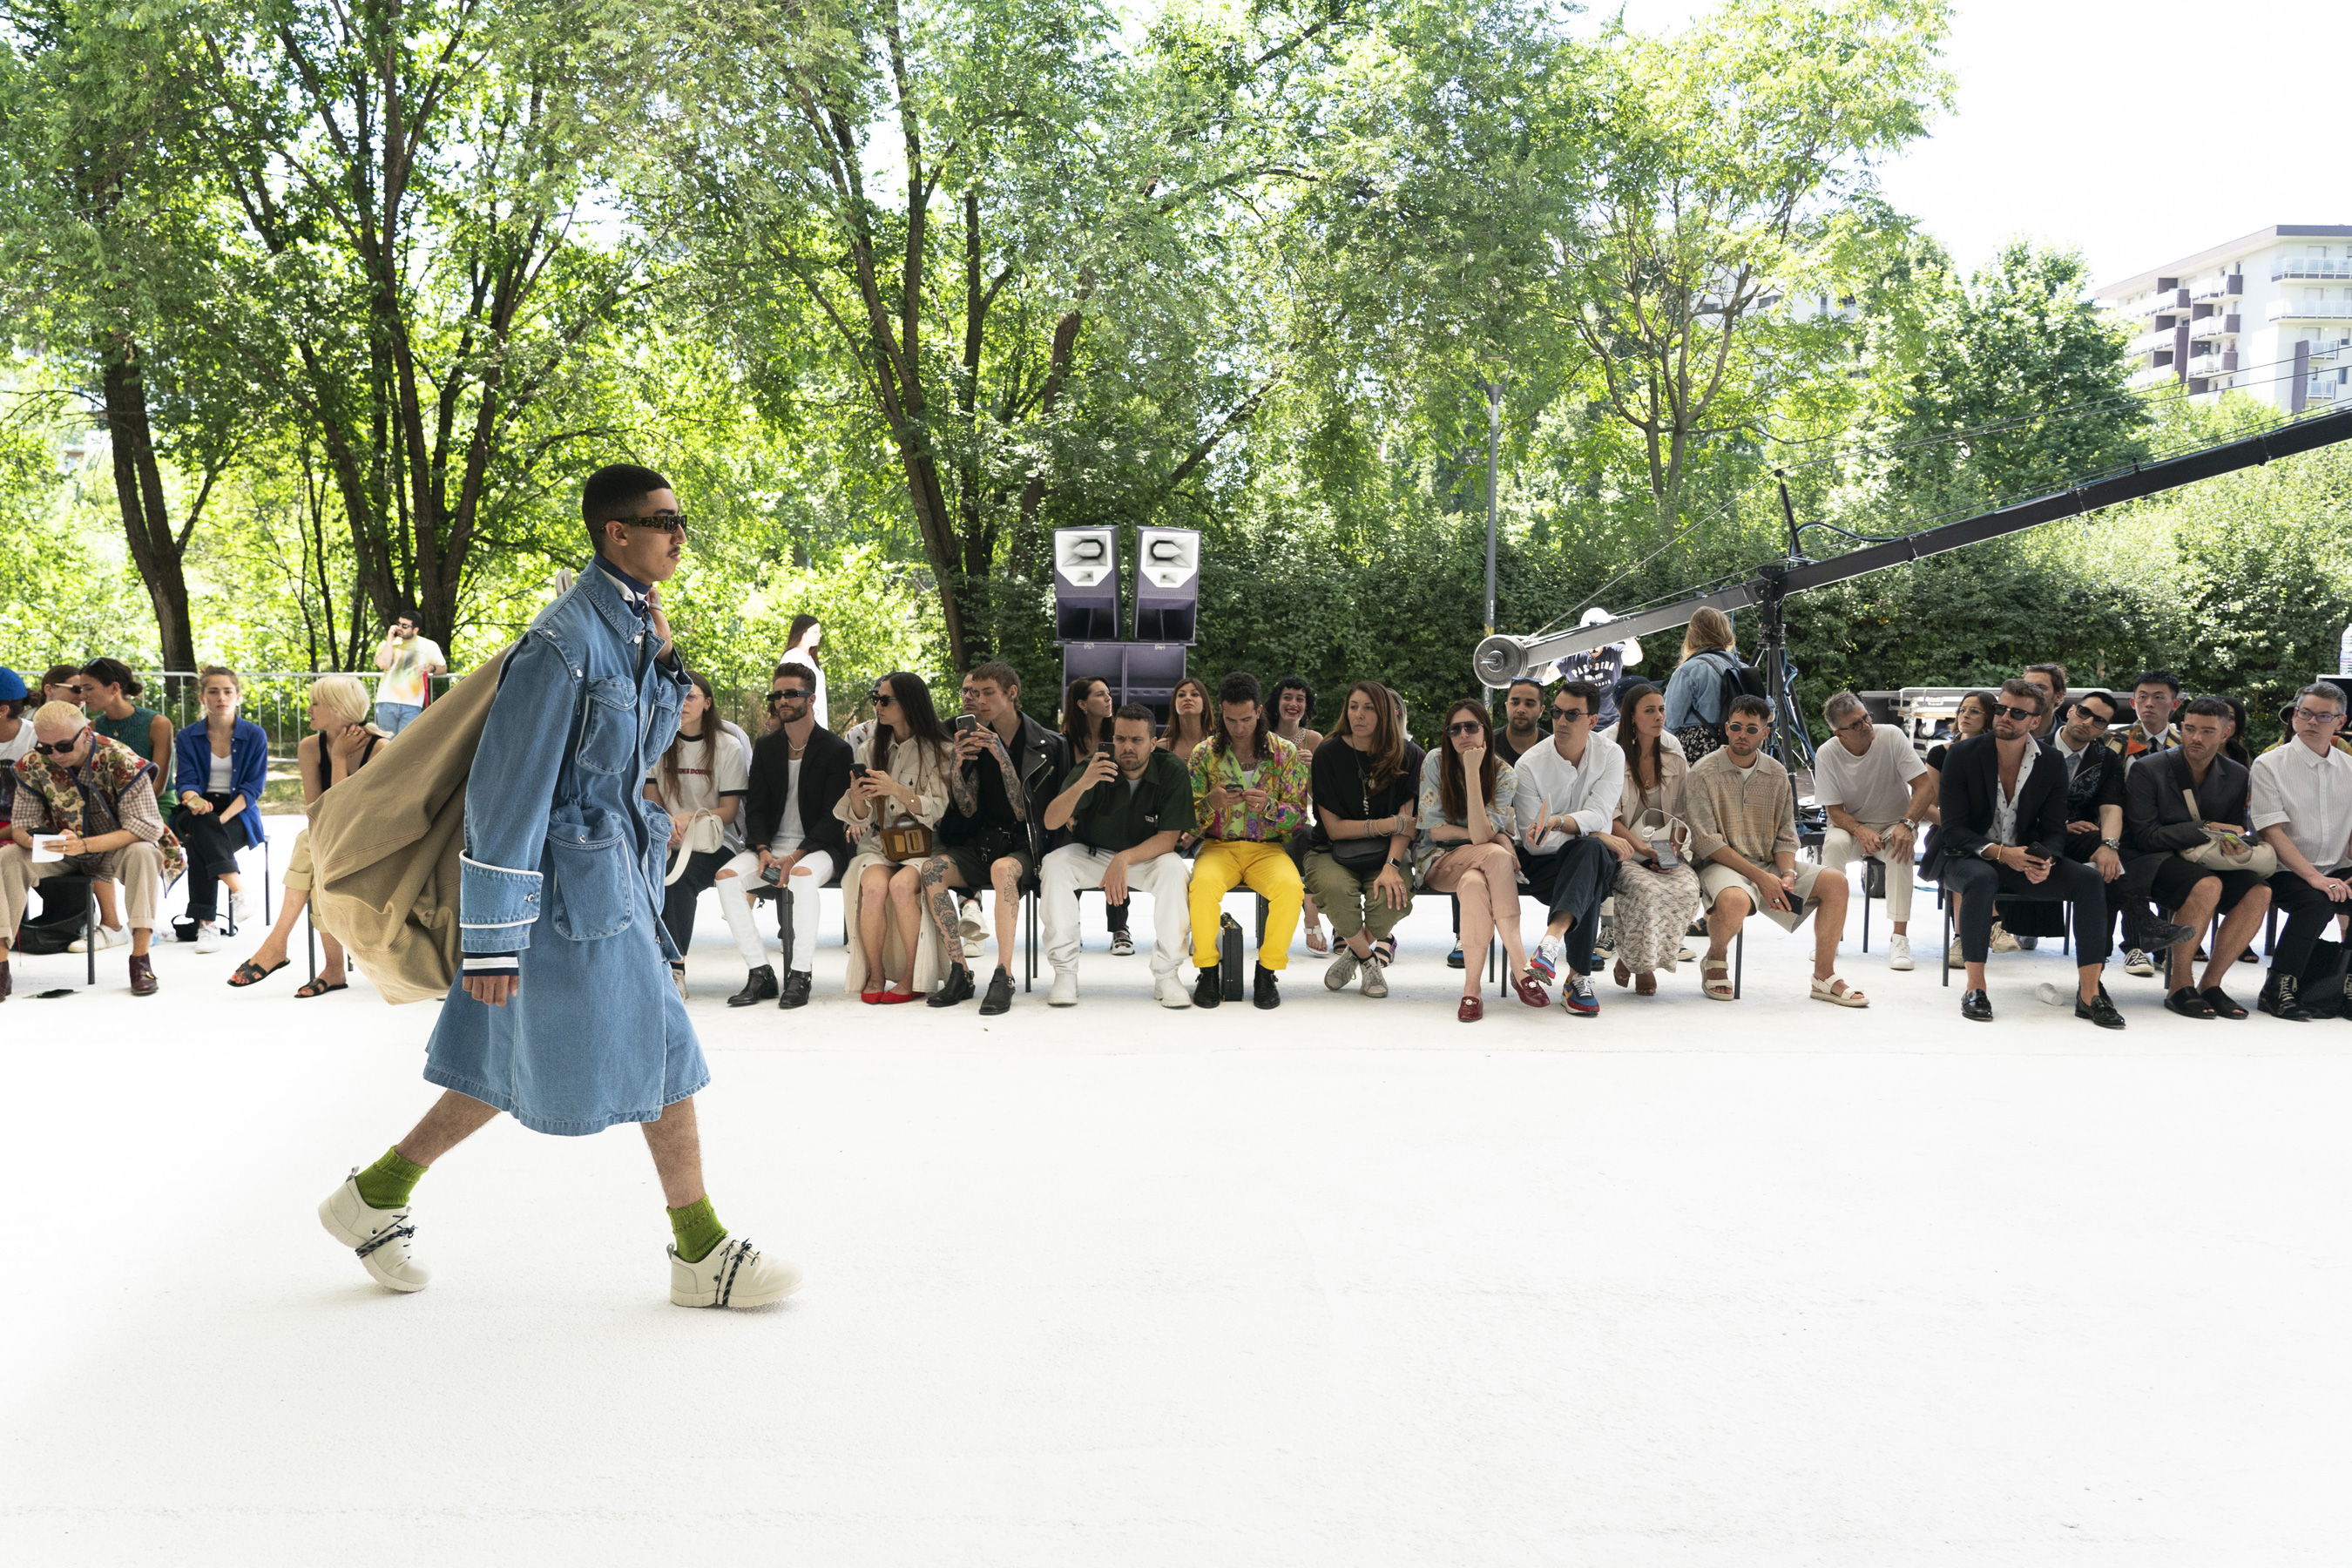 Sunnei Spring 2020 Men's Fashion Show Atmosphere